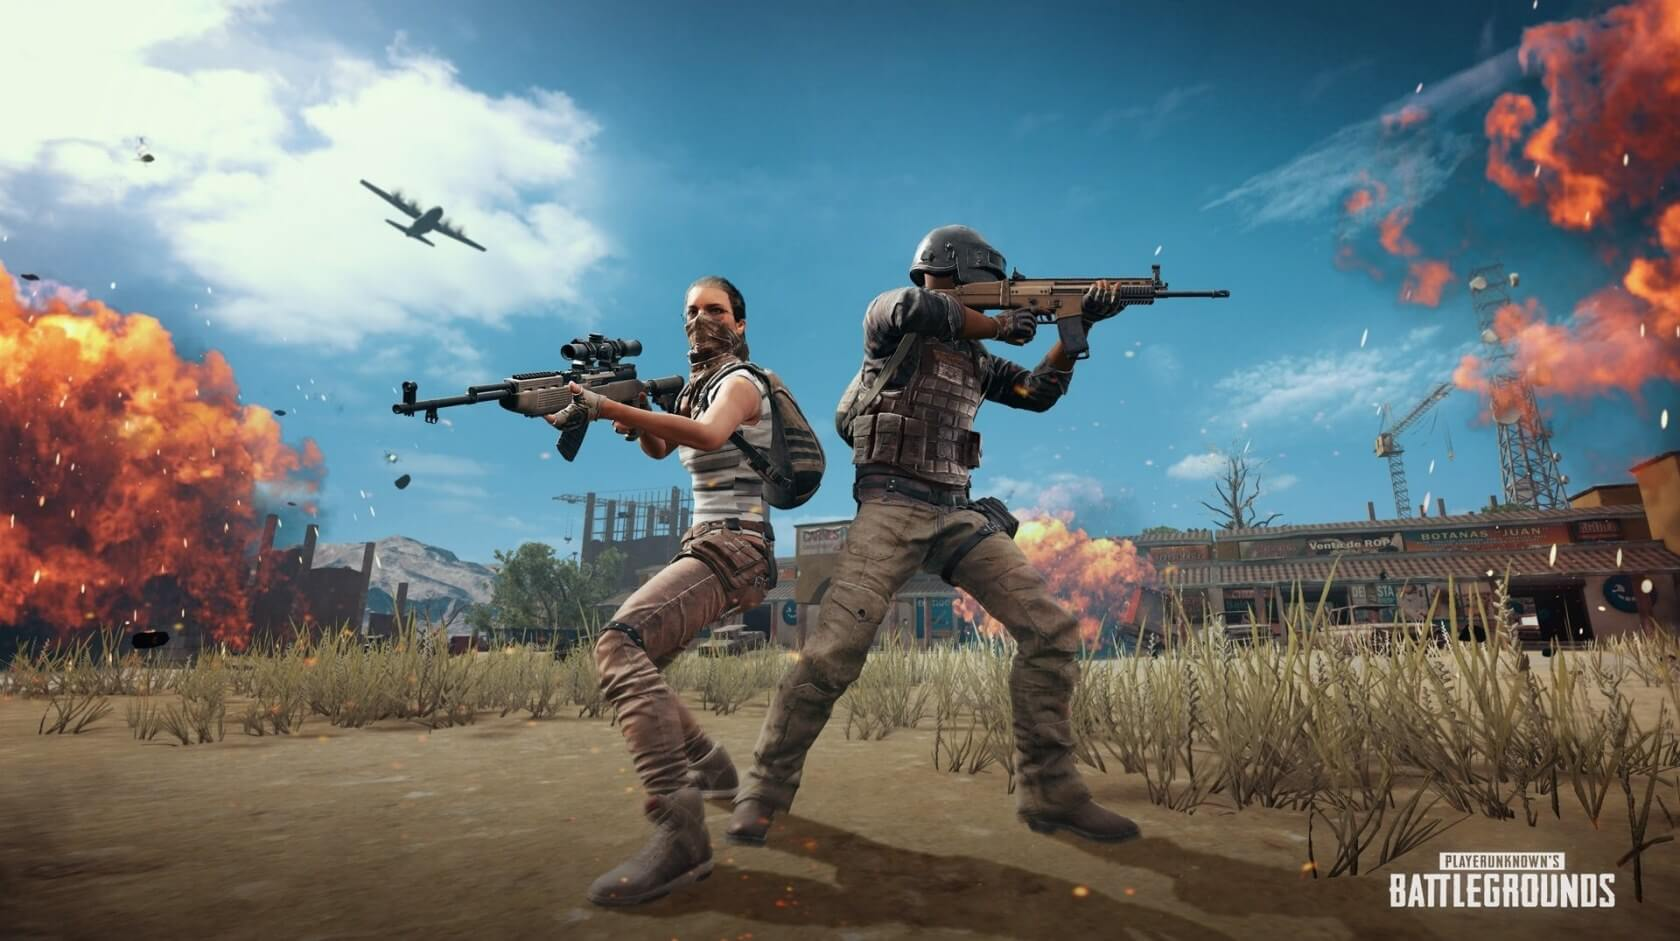 Controversial Pubg Corp Will Be Adding The Ability To Create Custom Matches In Battlegrounds Many Fans Have Been Asking For This Feature